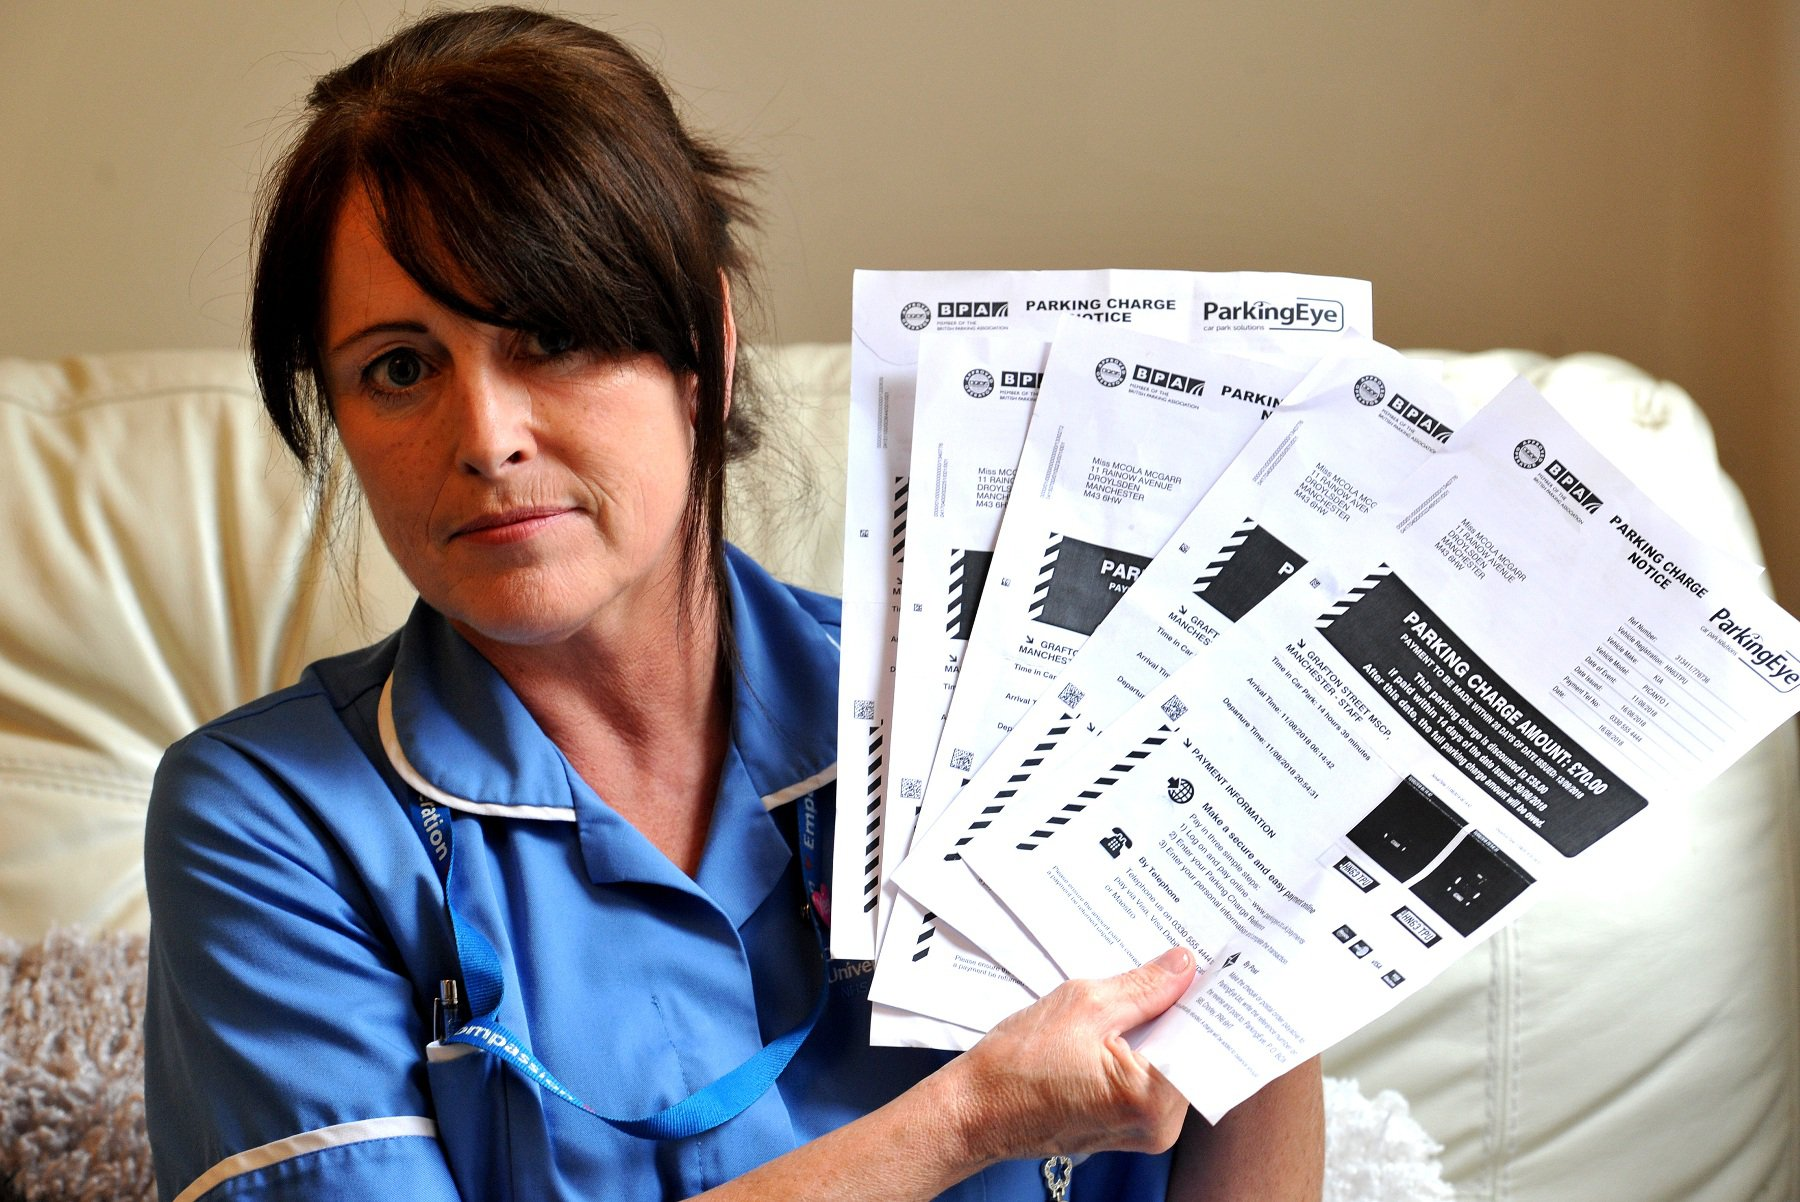 A nurse at Manchester Royal Infirmary received parking fines worth ?350 - despite having a monthly parking fee taken from her wages. Nicola McGarr, a ward sister in the Acute Medical Unit, was slapped with fines by private company Parking Eye during five shifts at the hospital. Caption: Nicola McGrarr who is a nurse at MRI has got five parking fines from a private parking firm despite paying a monthly parking fee out of her wages